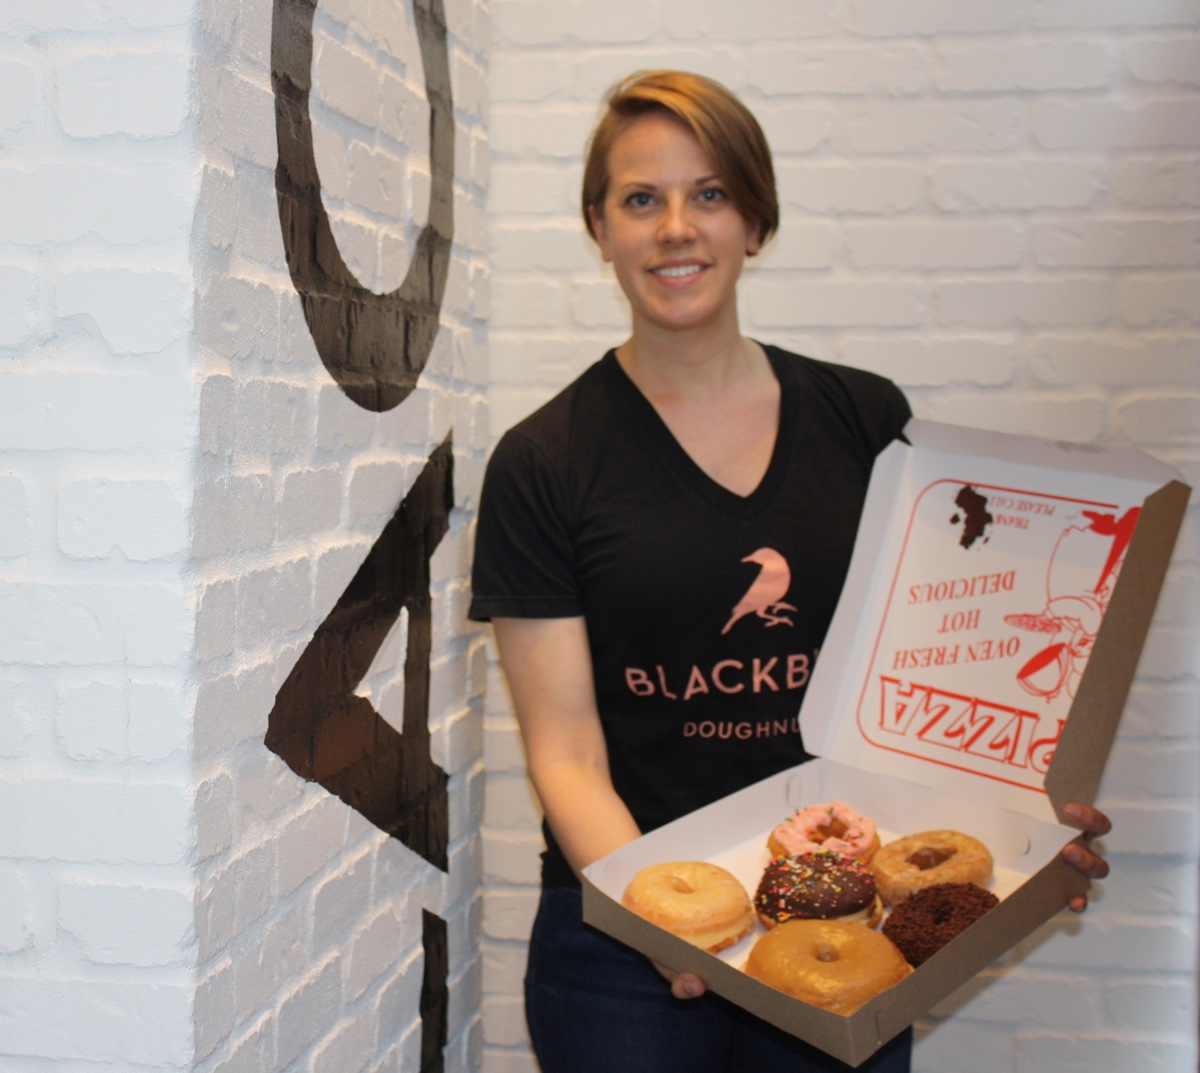 Blackbird Doughnuts chef and partner Anna Perna